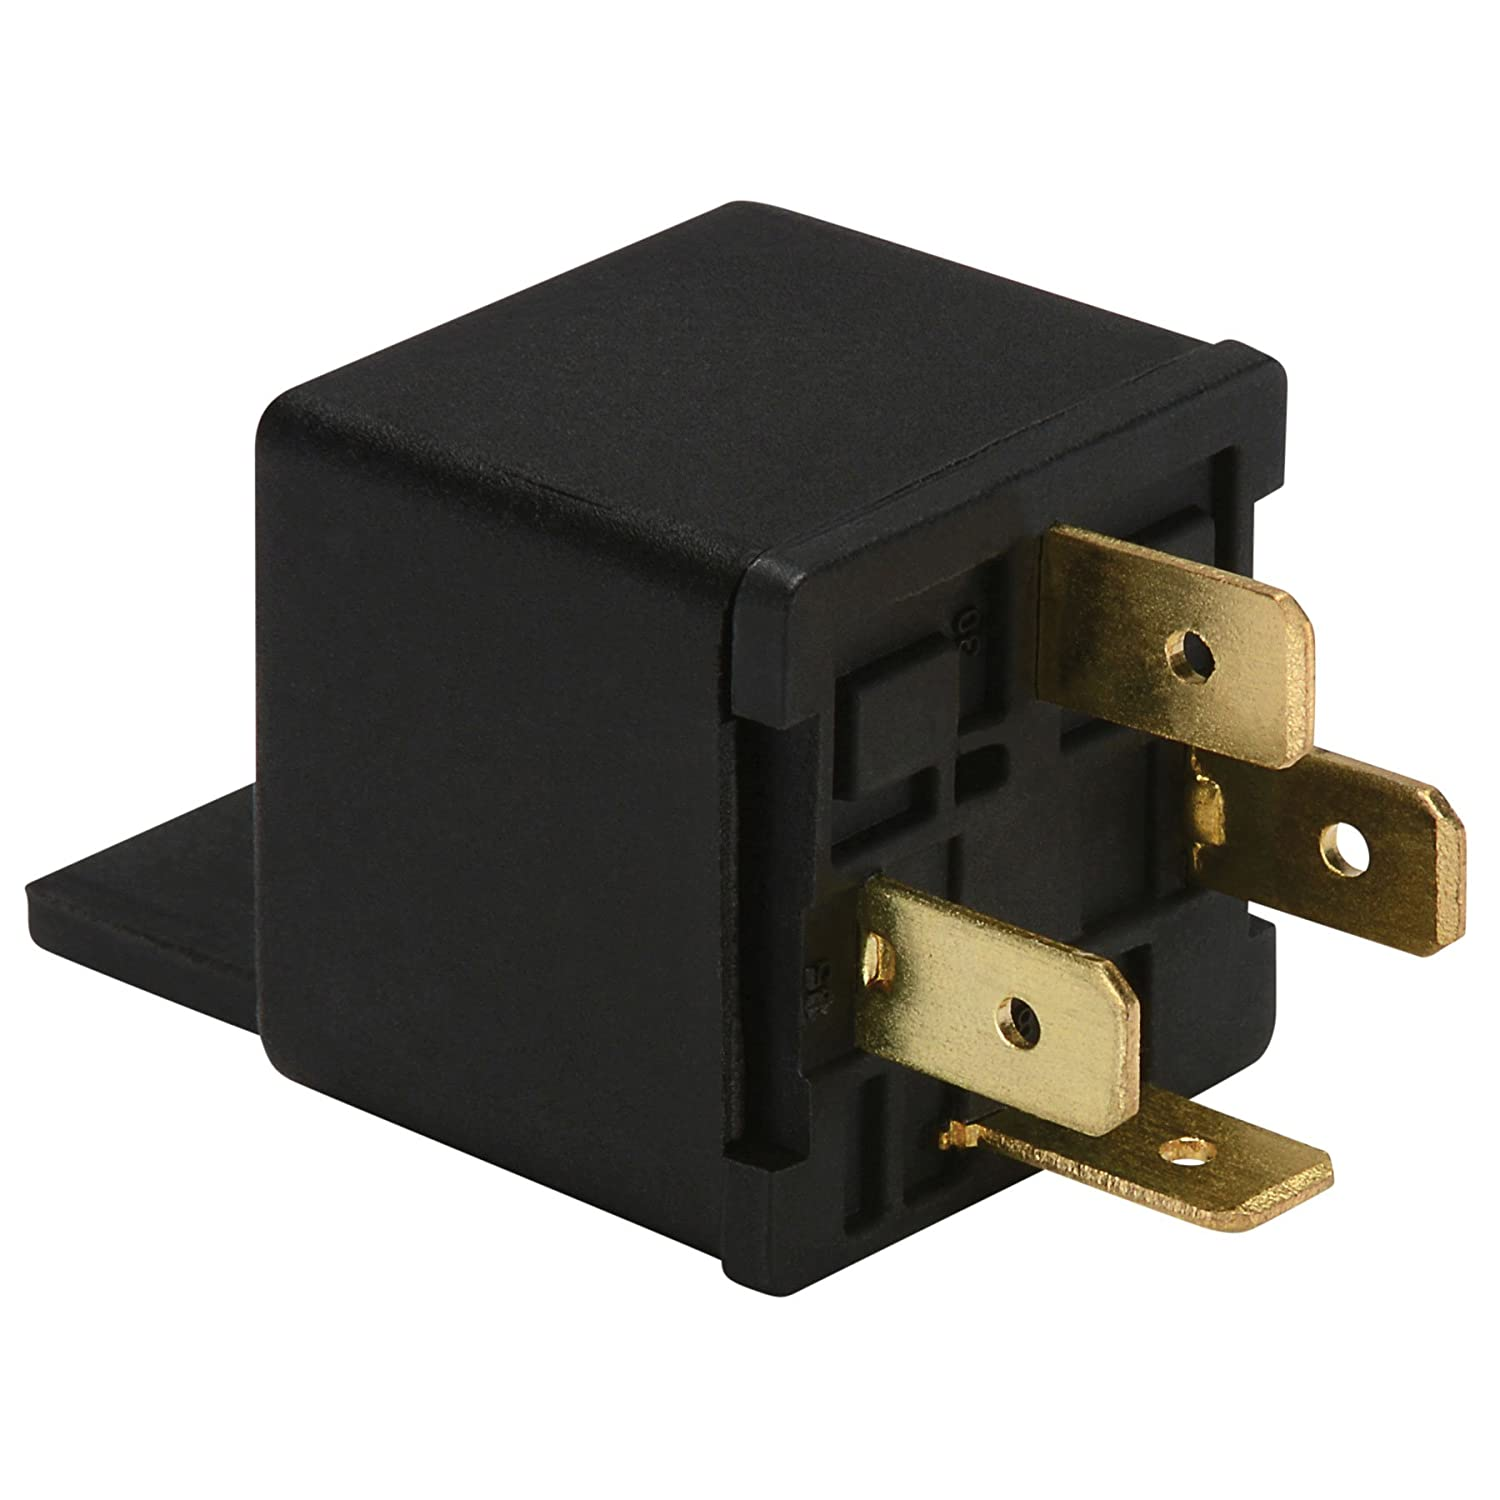 Factory Buyouts Emitter 12 VDC 4-Pin Relay SPST 40A